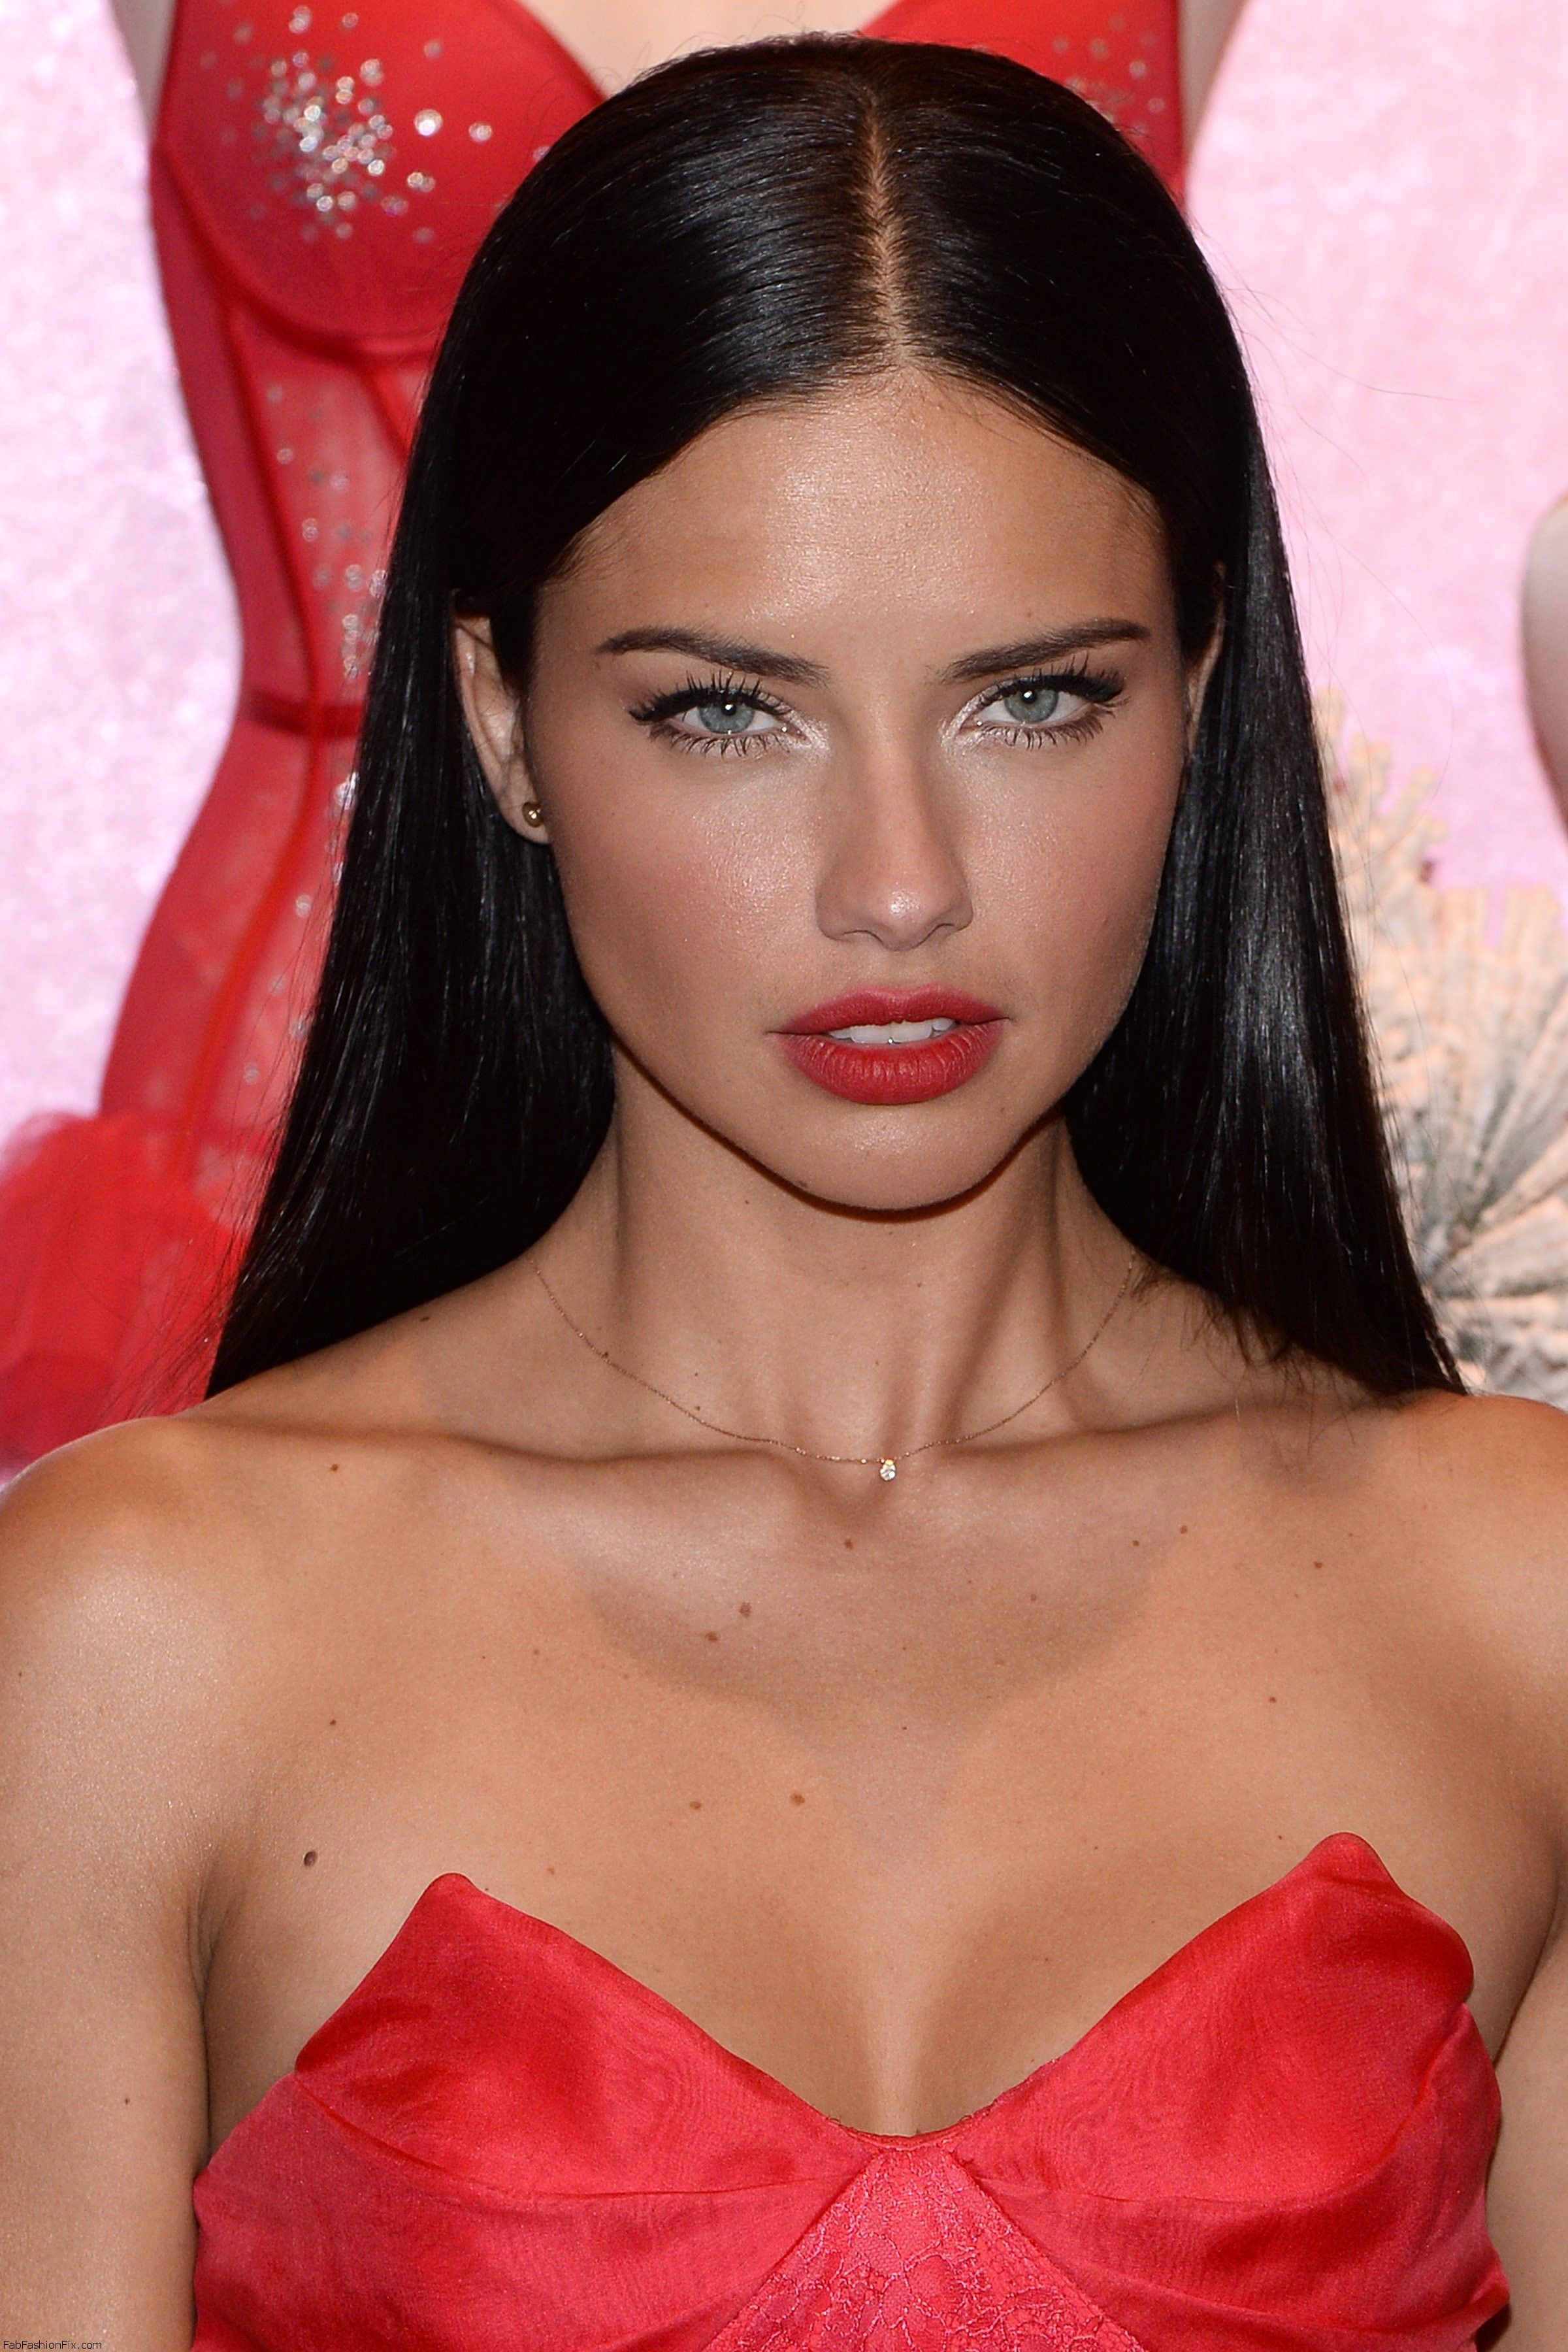 Victoria s Secret Angels celebrate the Holidays 2013 at Victorias